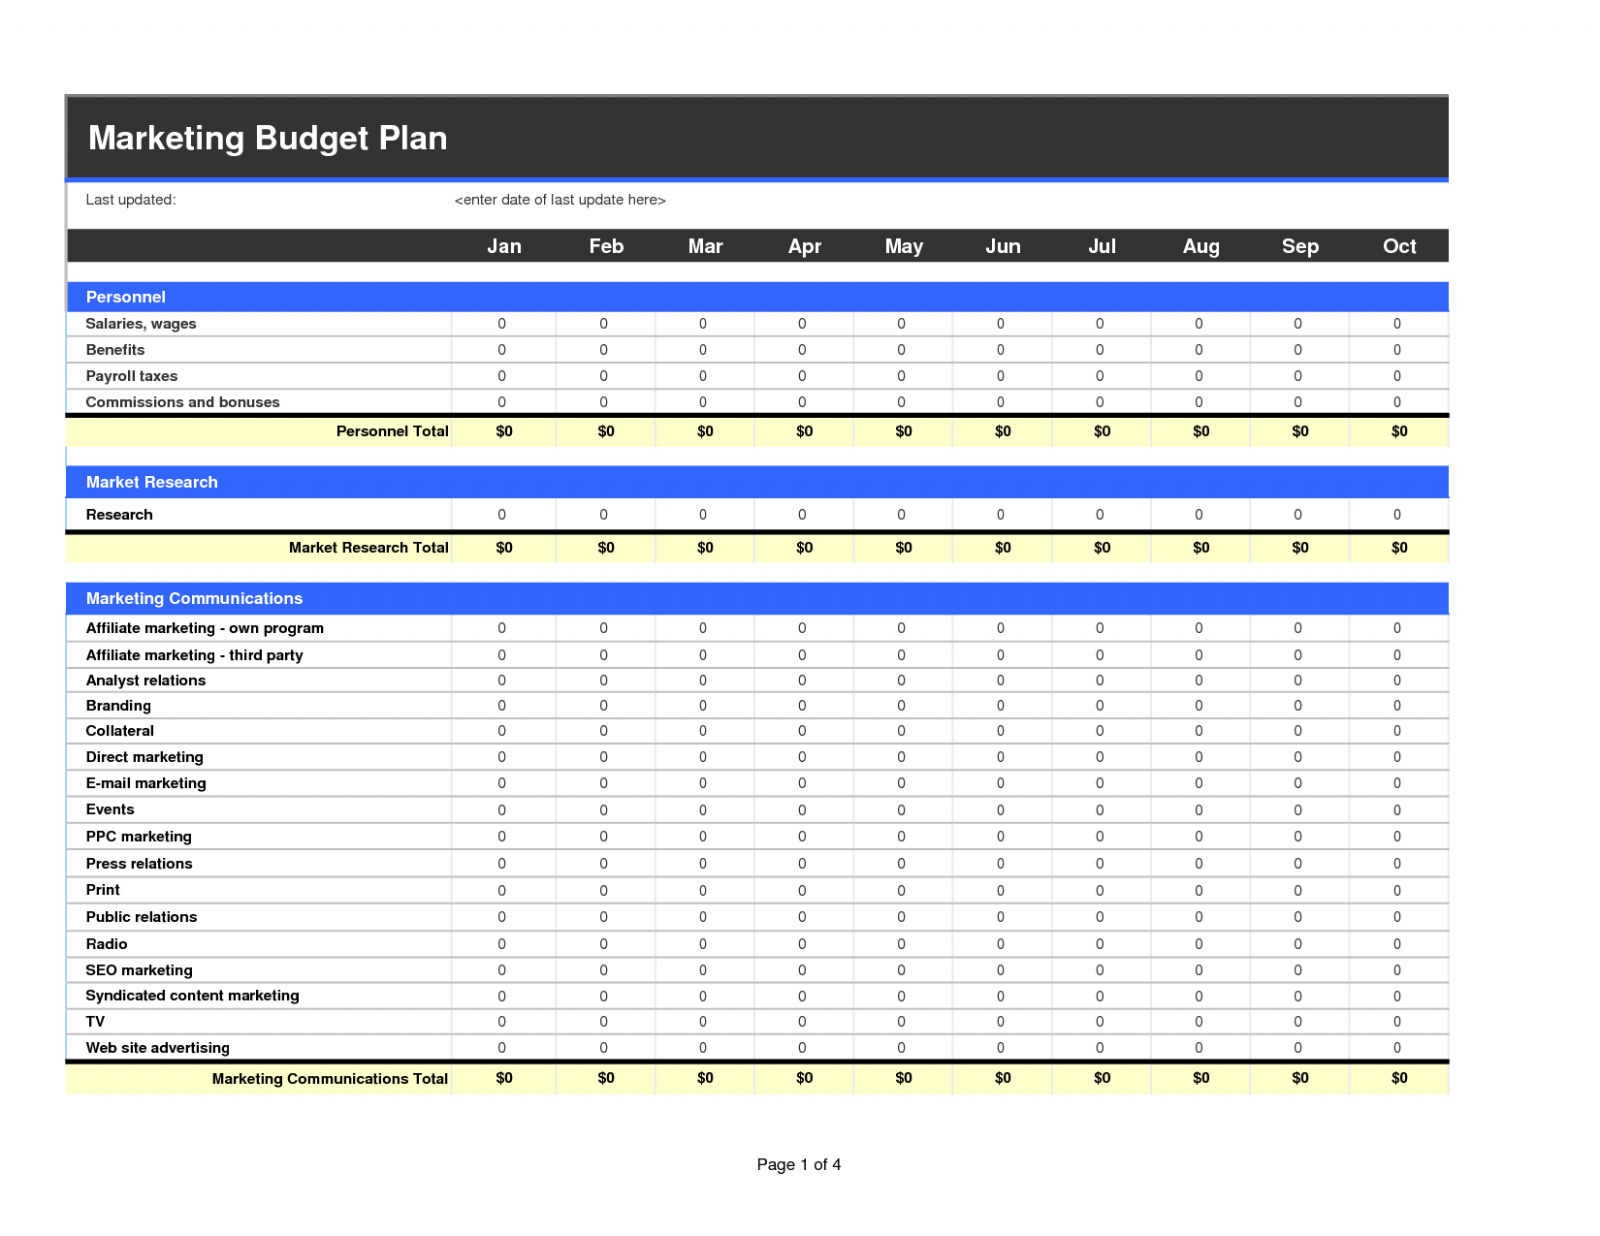 Stock Market Spreadsheet Regarding Marketing Budget Sheet Template Stock Market Excel Spreadsheet